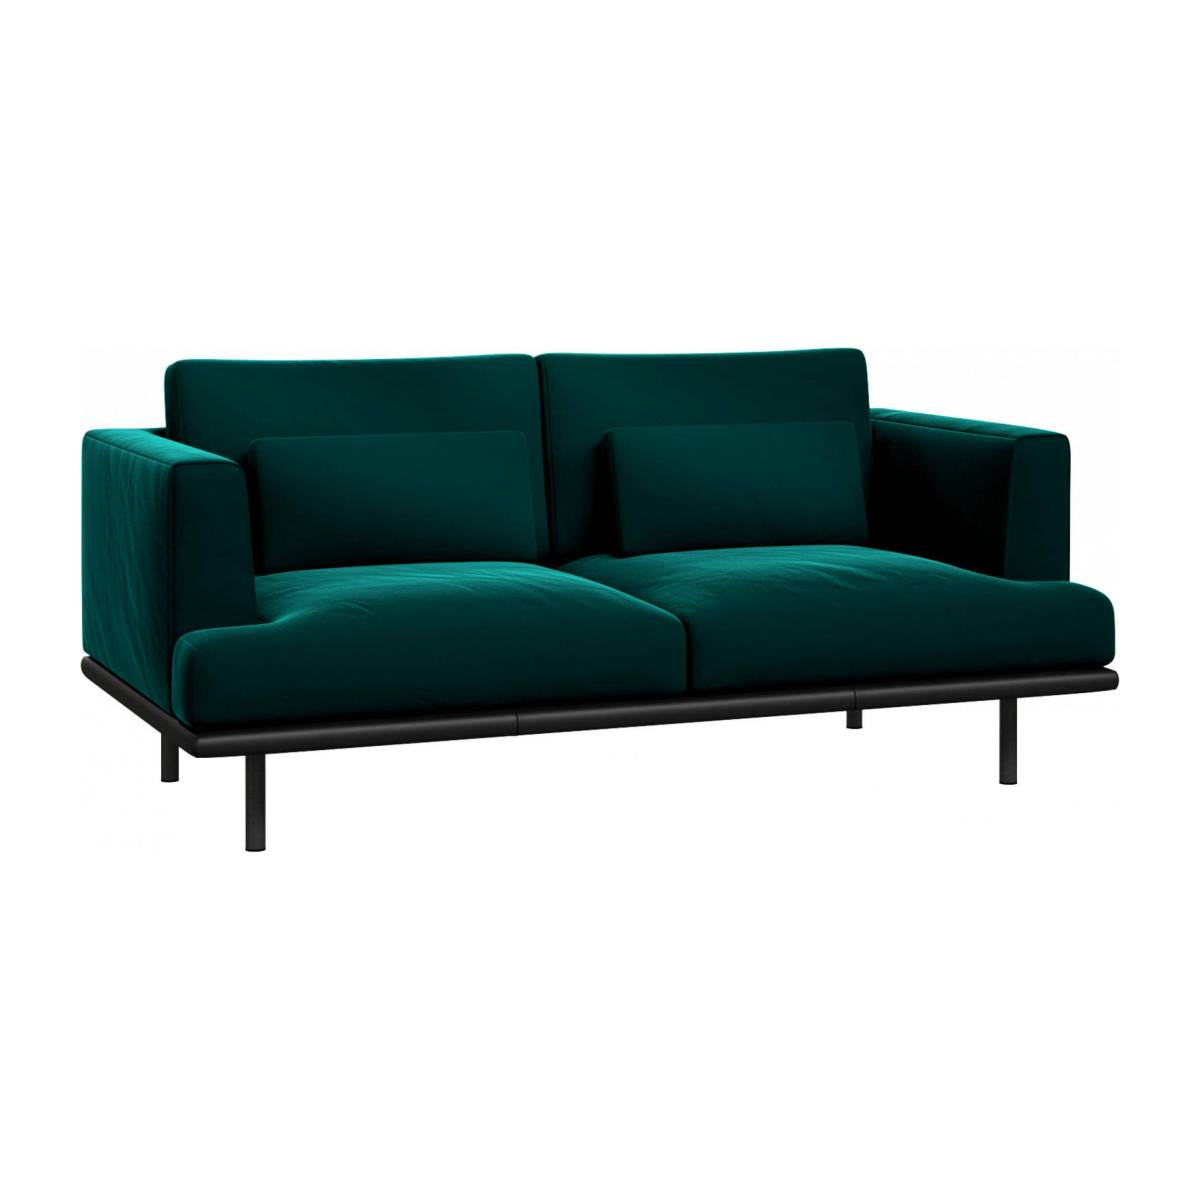 2 seater sofa in Super Velvet fabric, petrol blue with base in black leather n°2